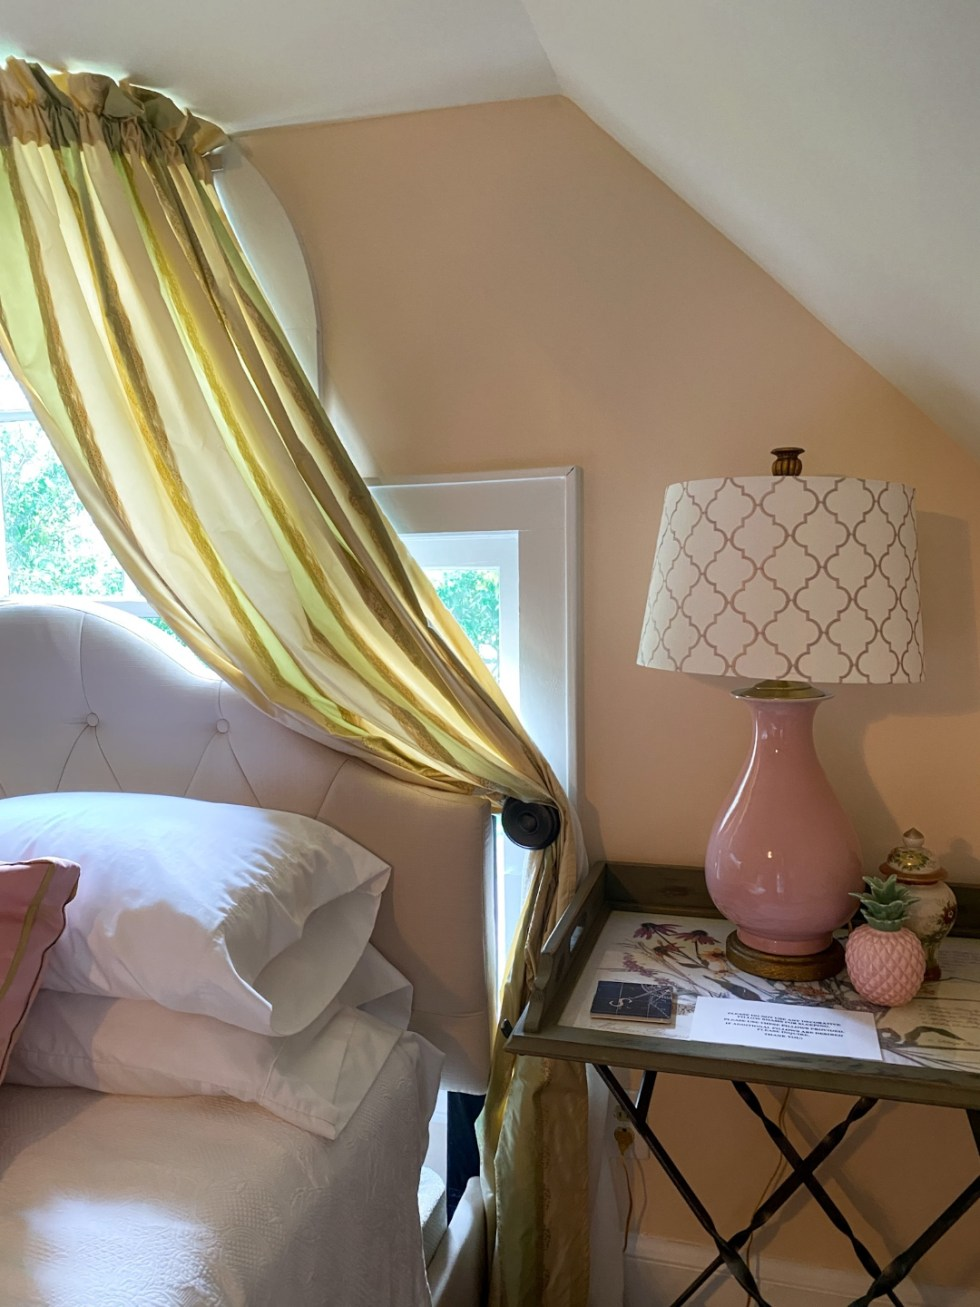 Top 10 Best Things to Do in Edenton, NC: A Complete Travel Guide - I'm Fixin' To - @imfixintoblog | Edenton Travel Guide by popular NC travel guid, I'm Fixin' To: image of a room with two pink base lamps, round end tables, bed with a white tuft upholstered headboard white bedding.